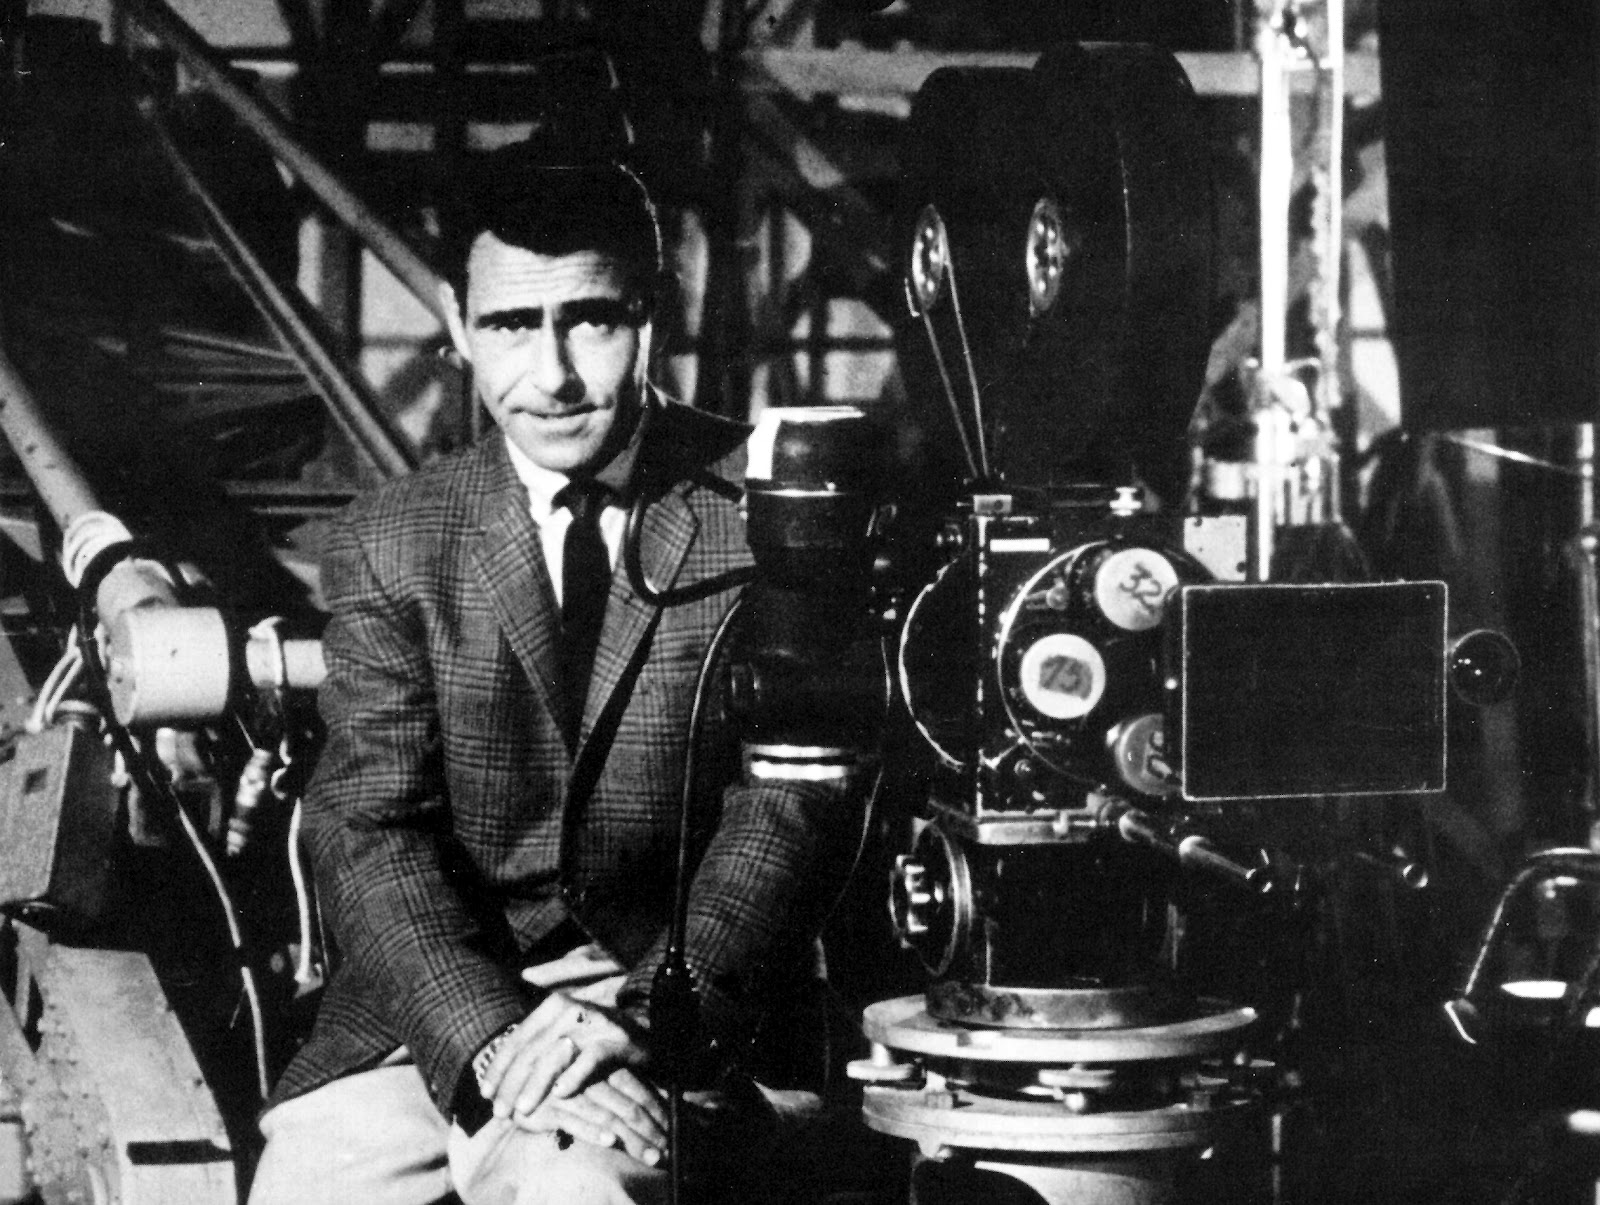 Rod Serling from Twilight Zone sits next to  a camera. B/W photo.